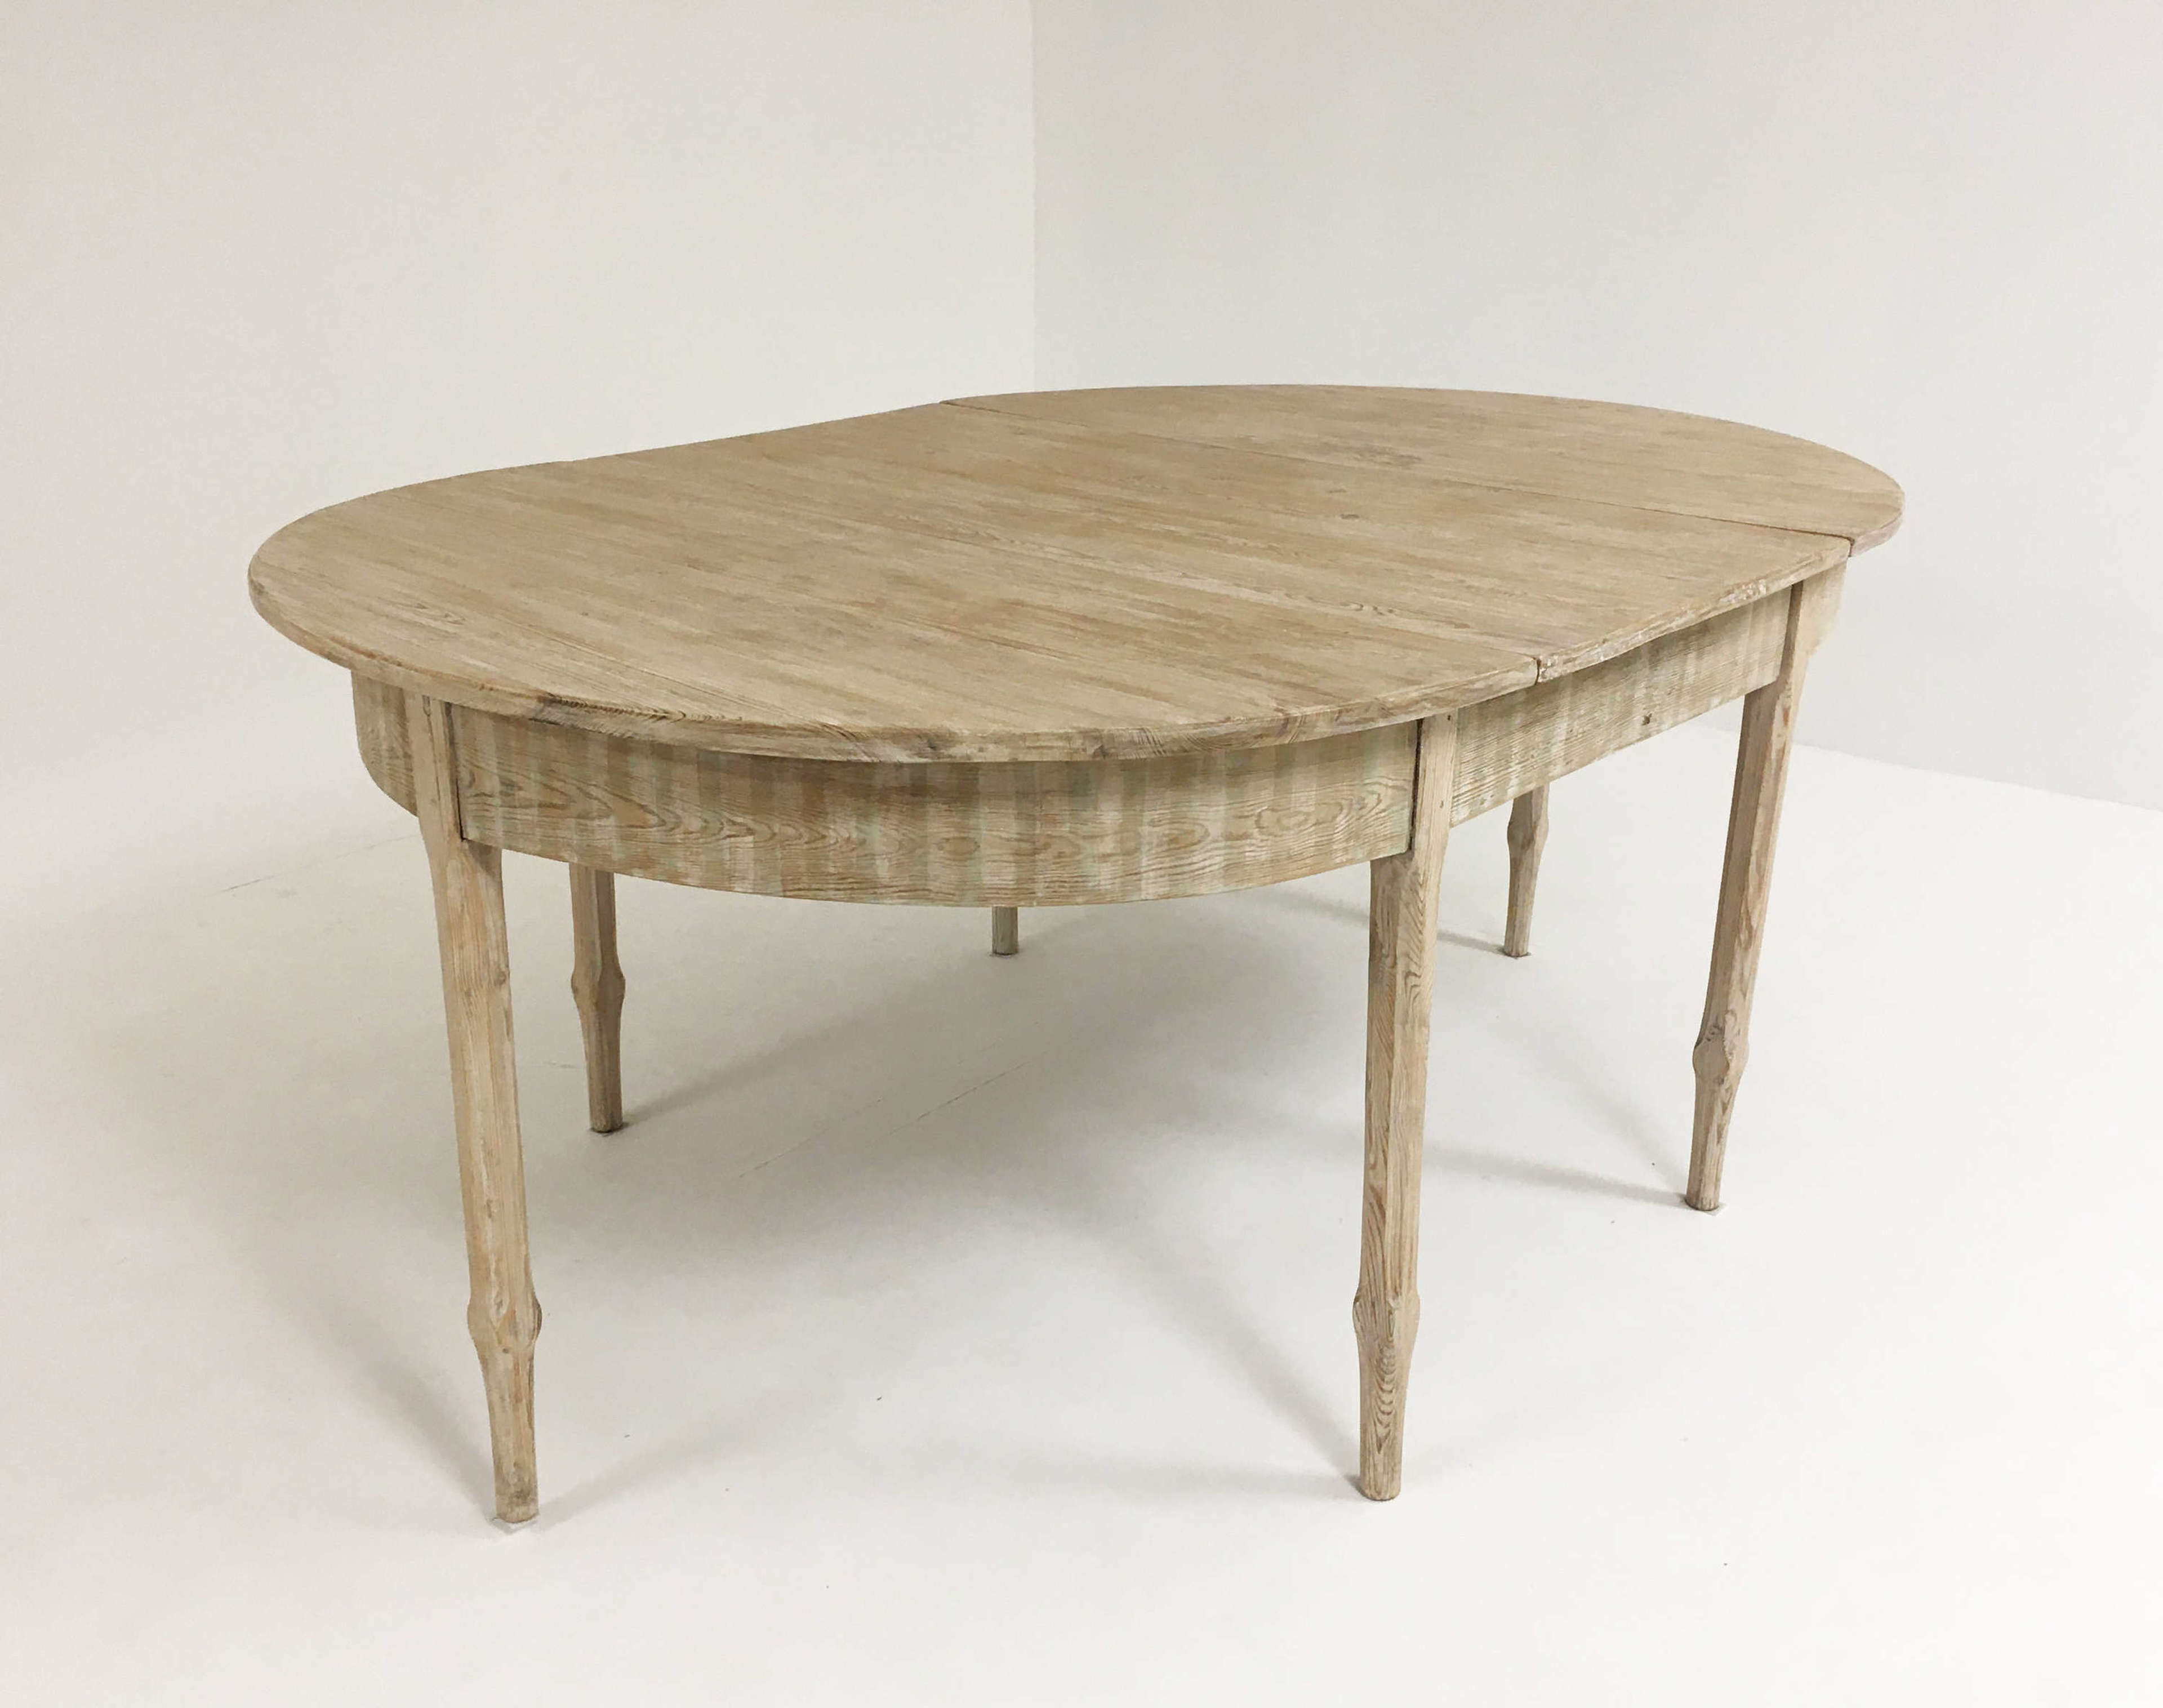 19th c Swedish Dining Table with extension - circa 1860